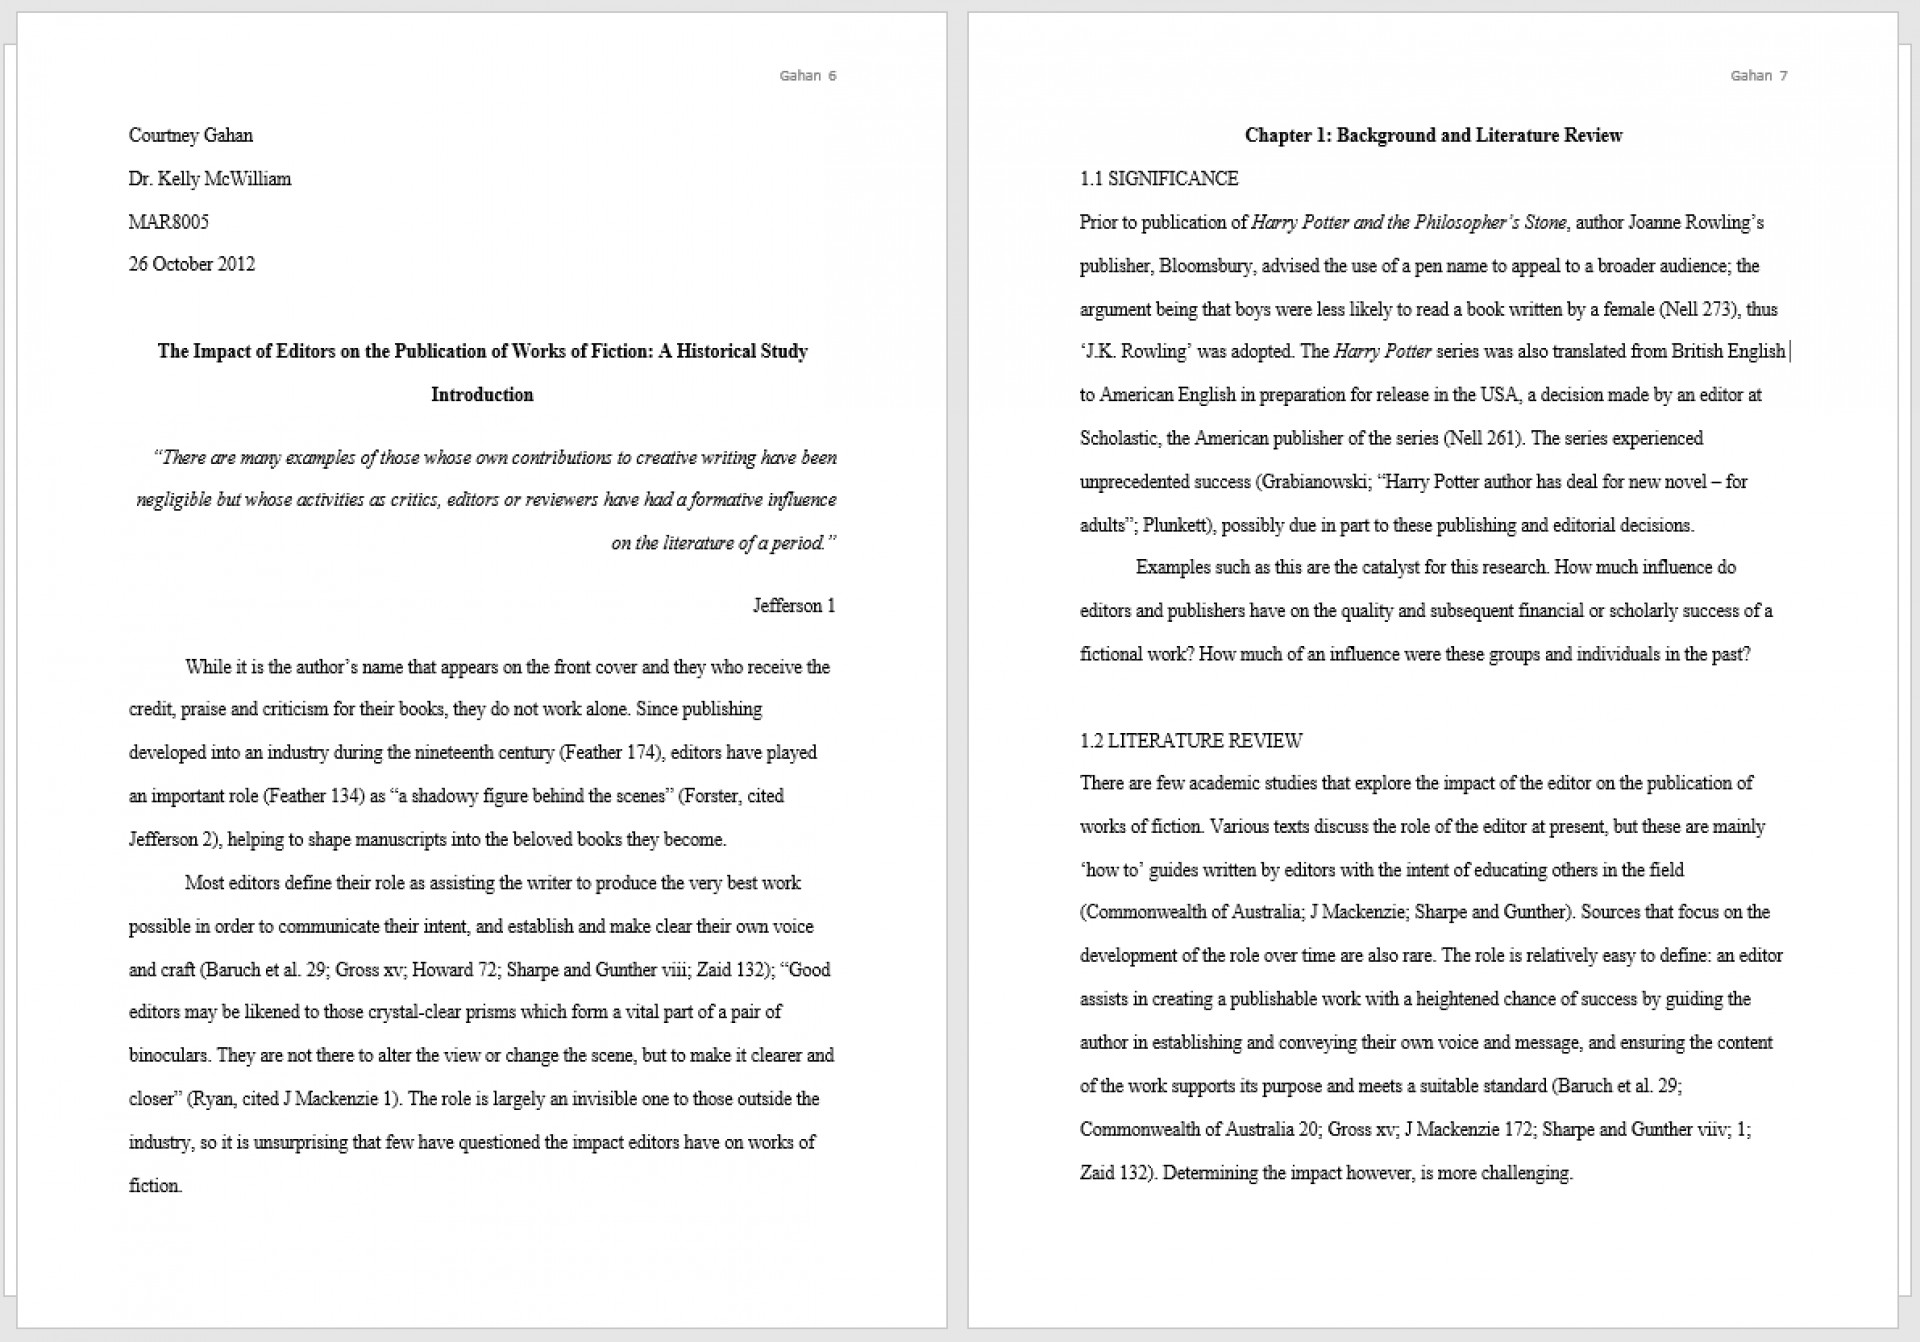 011 Thesis Two Pages Example Full Mla Magnificent Essay Format 2017 In Text Citation Title Page 1920